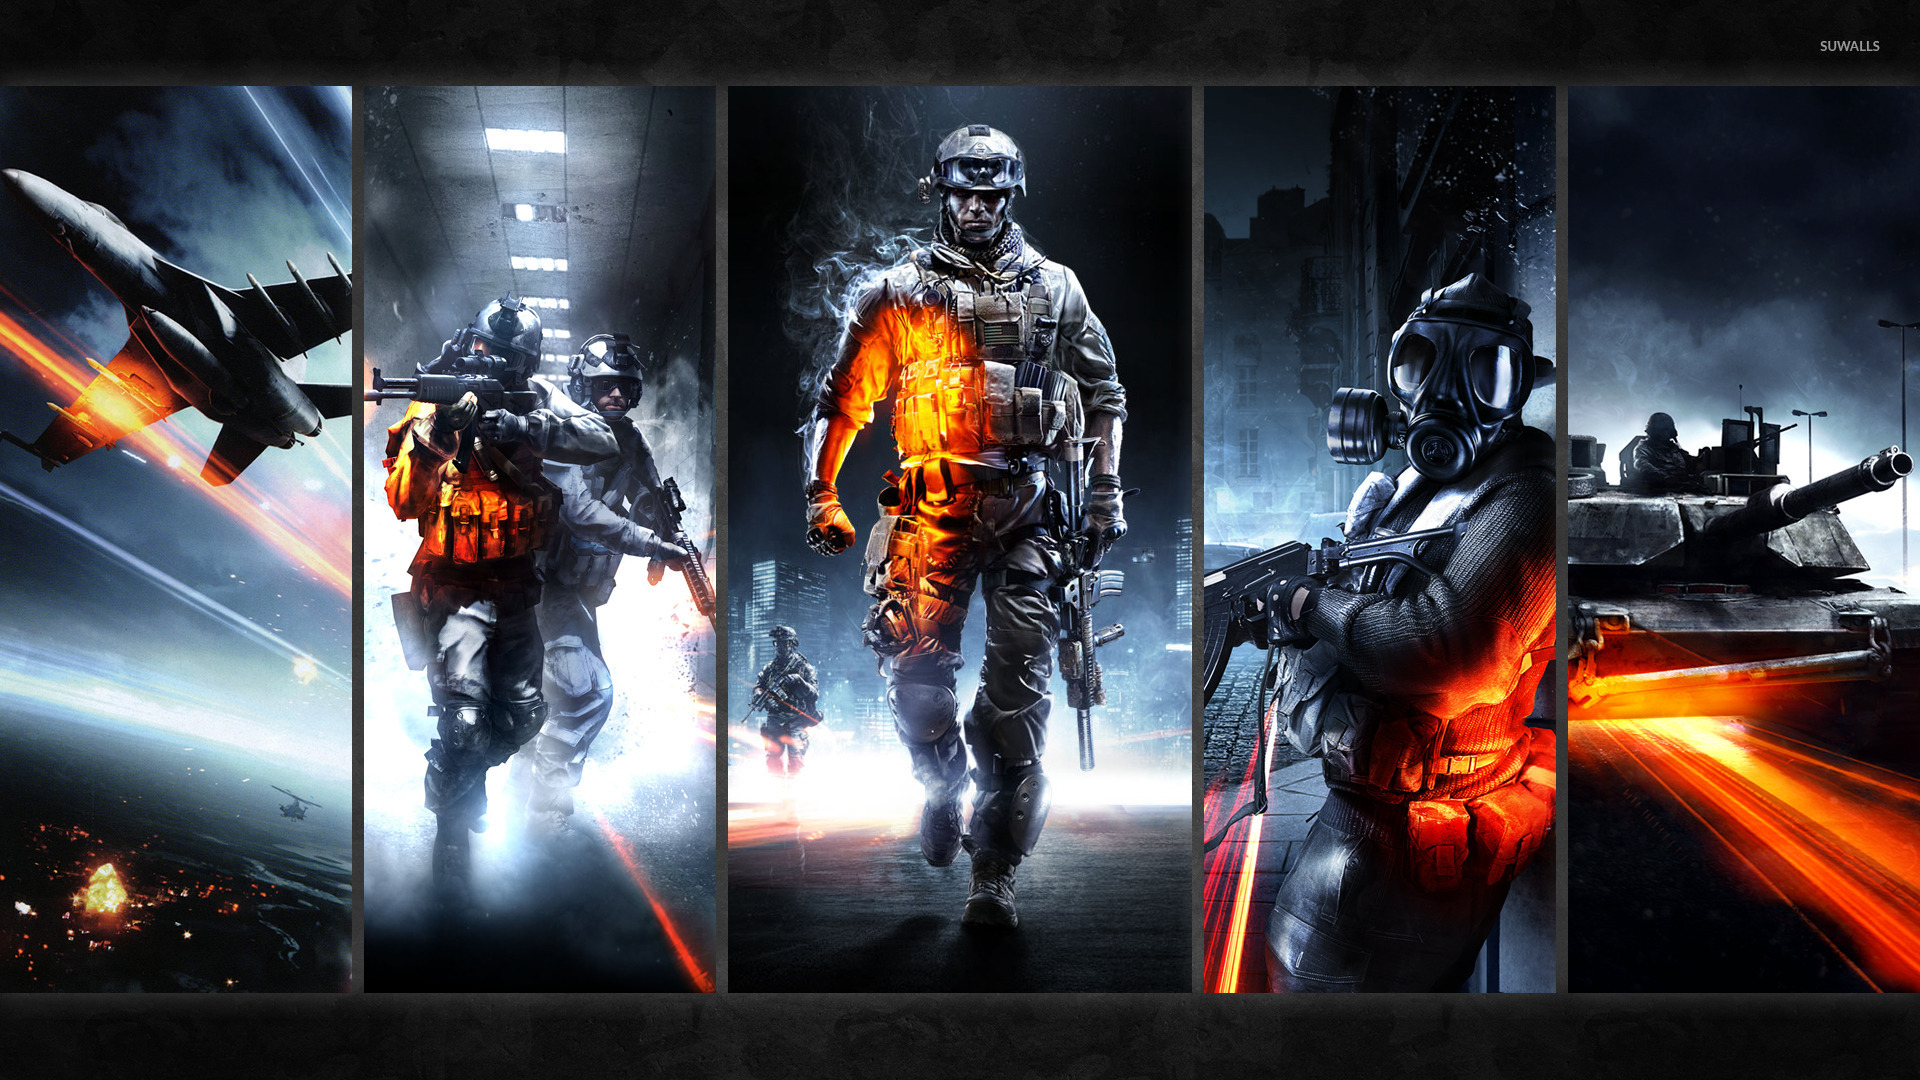 Battlefield 4 wallpaper   Game wallpapers   21230 1366x768